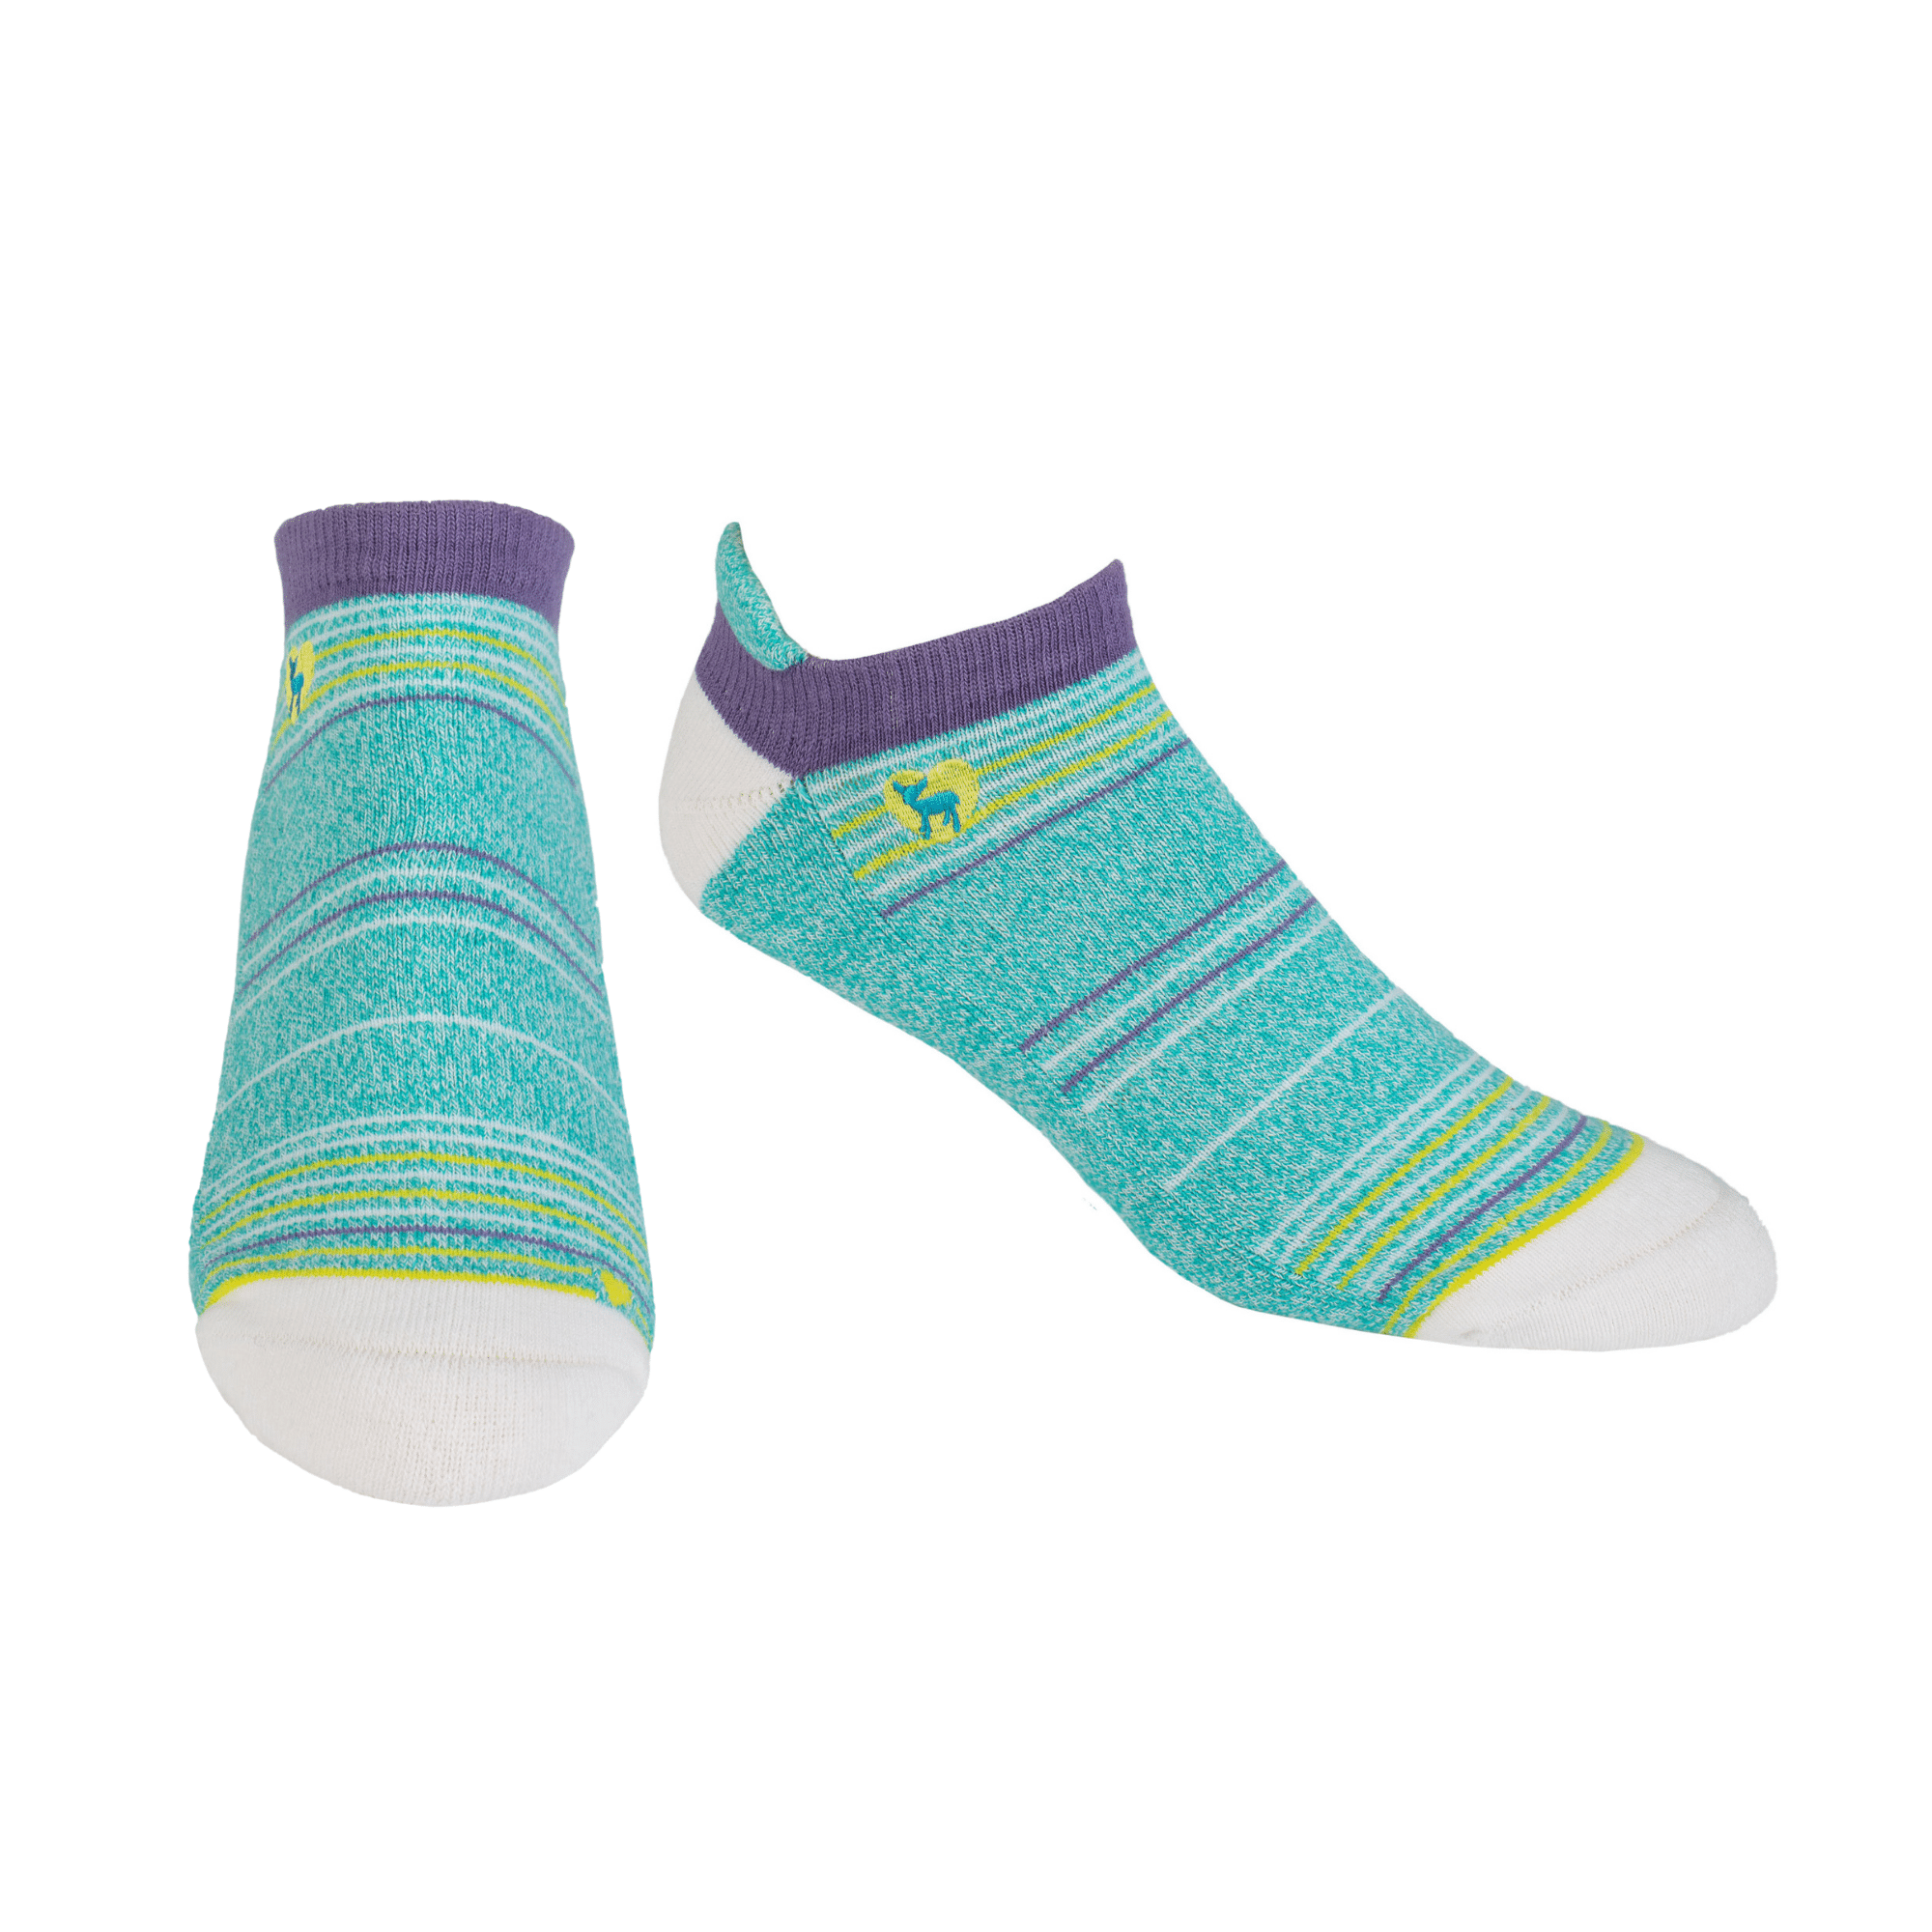 Cushioned Socks | Comfy Ankle | Seaside Peacock